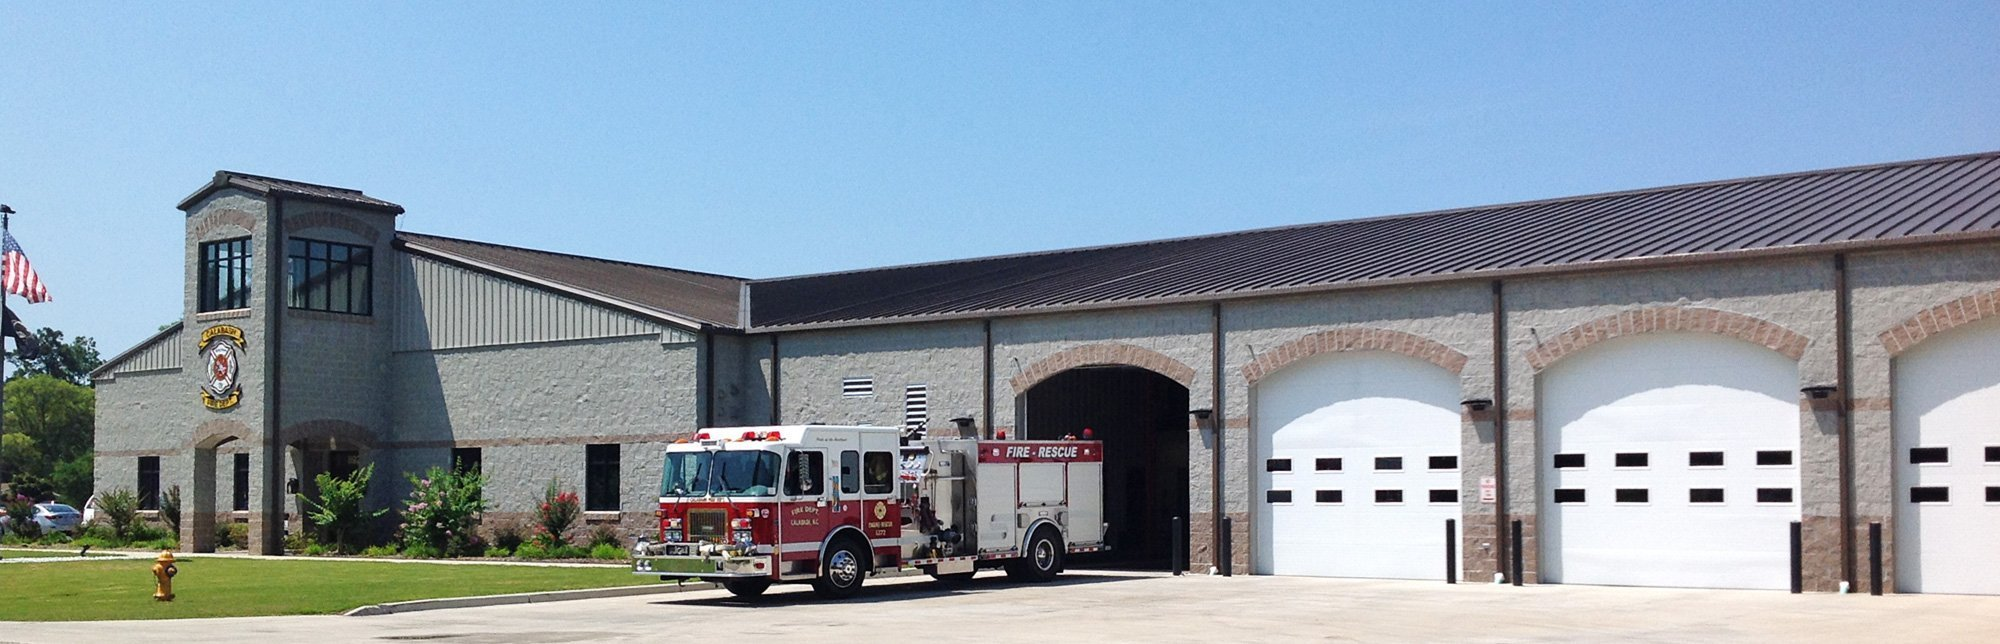 Calabash, NC Fire Station - IBS